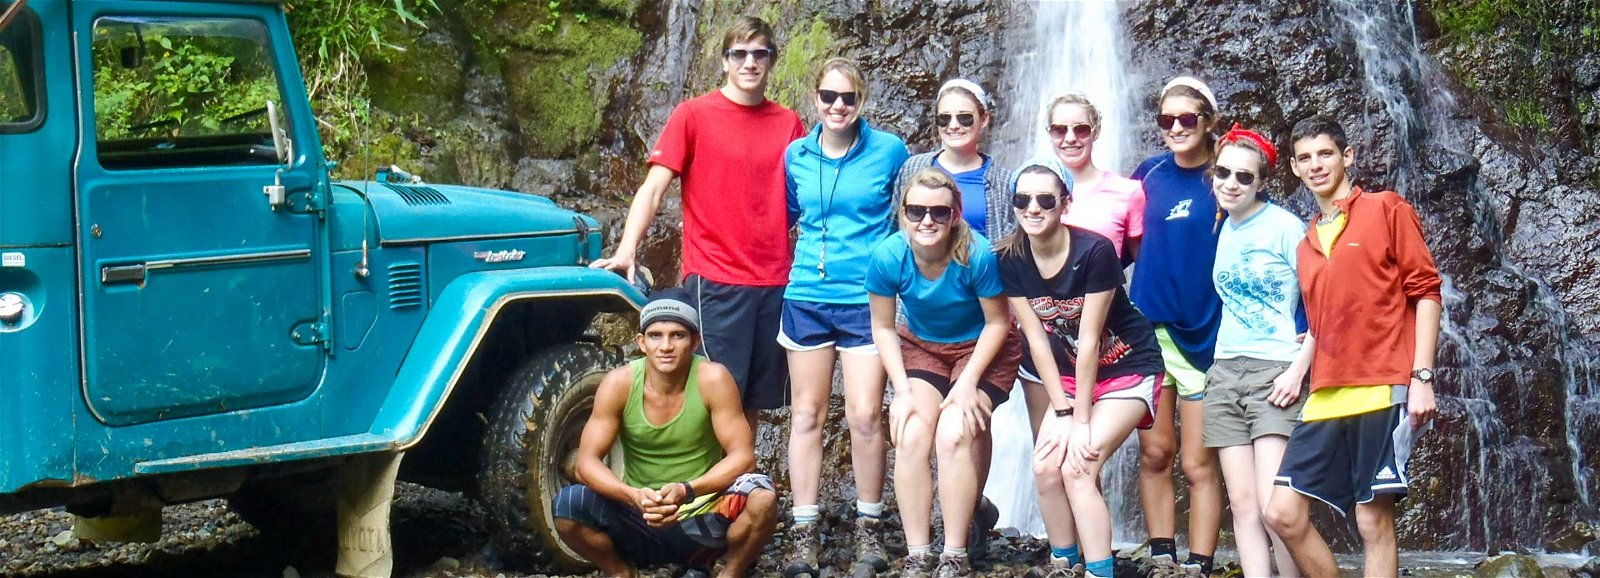 Group of teens standing by truck and waterfall